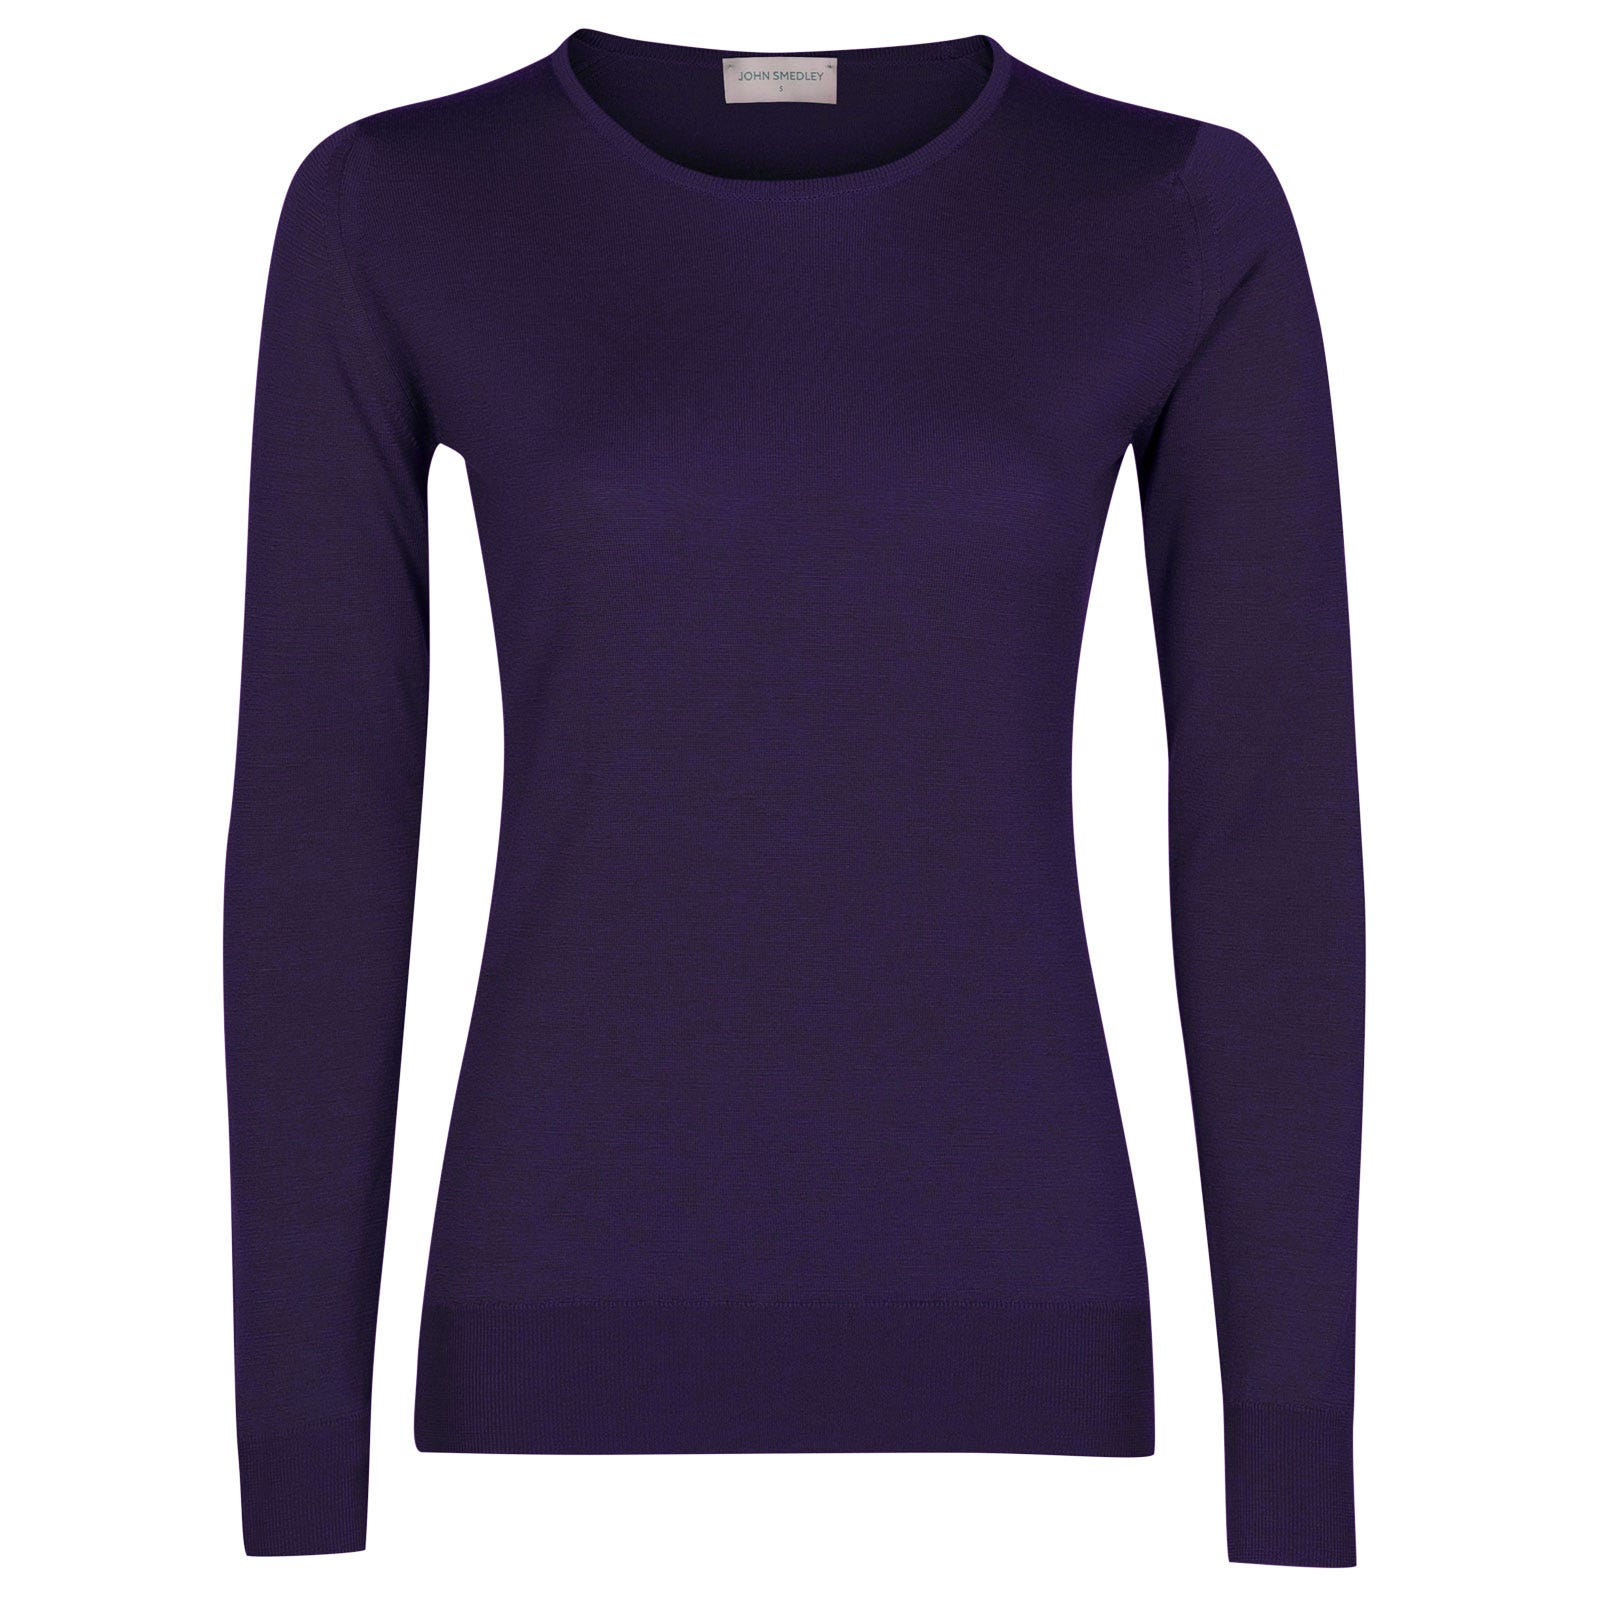 John Smedley geranium Merino Wool Sweater in Elderberry Purple-M